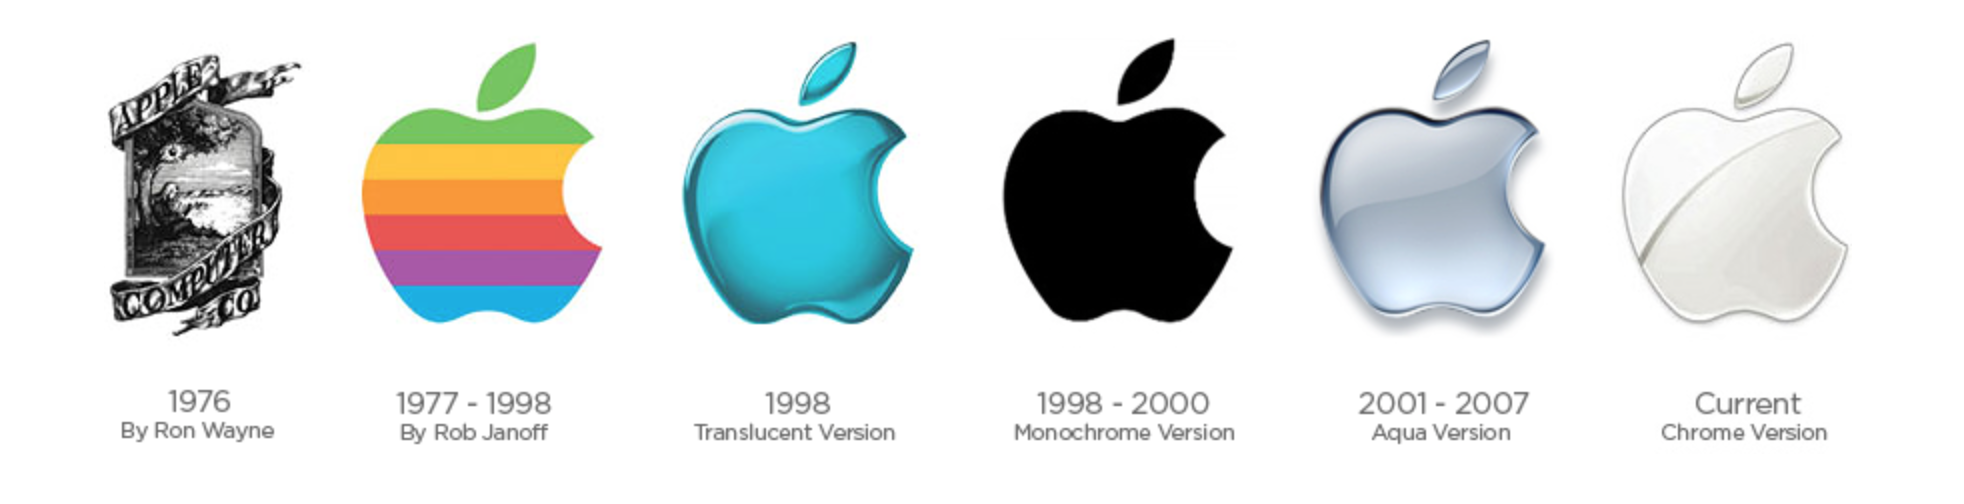 apple computer 1976 2015 logo evolutions pinterest apple logo logos and logo google